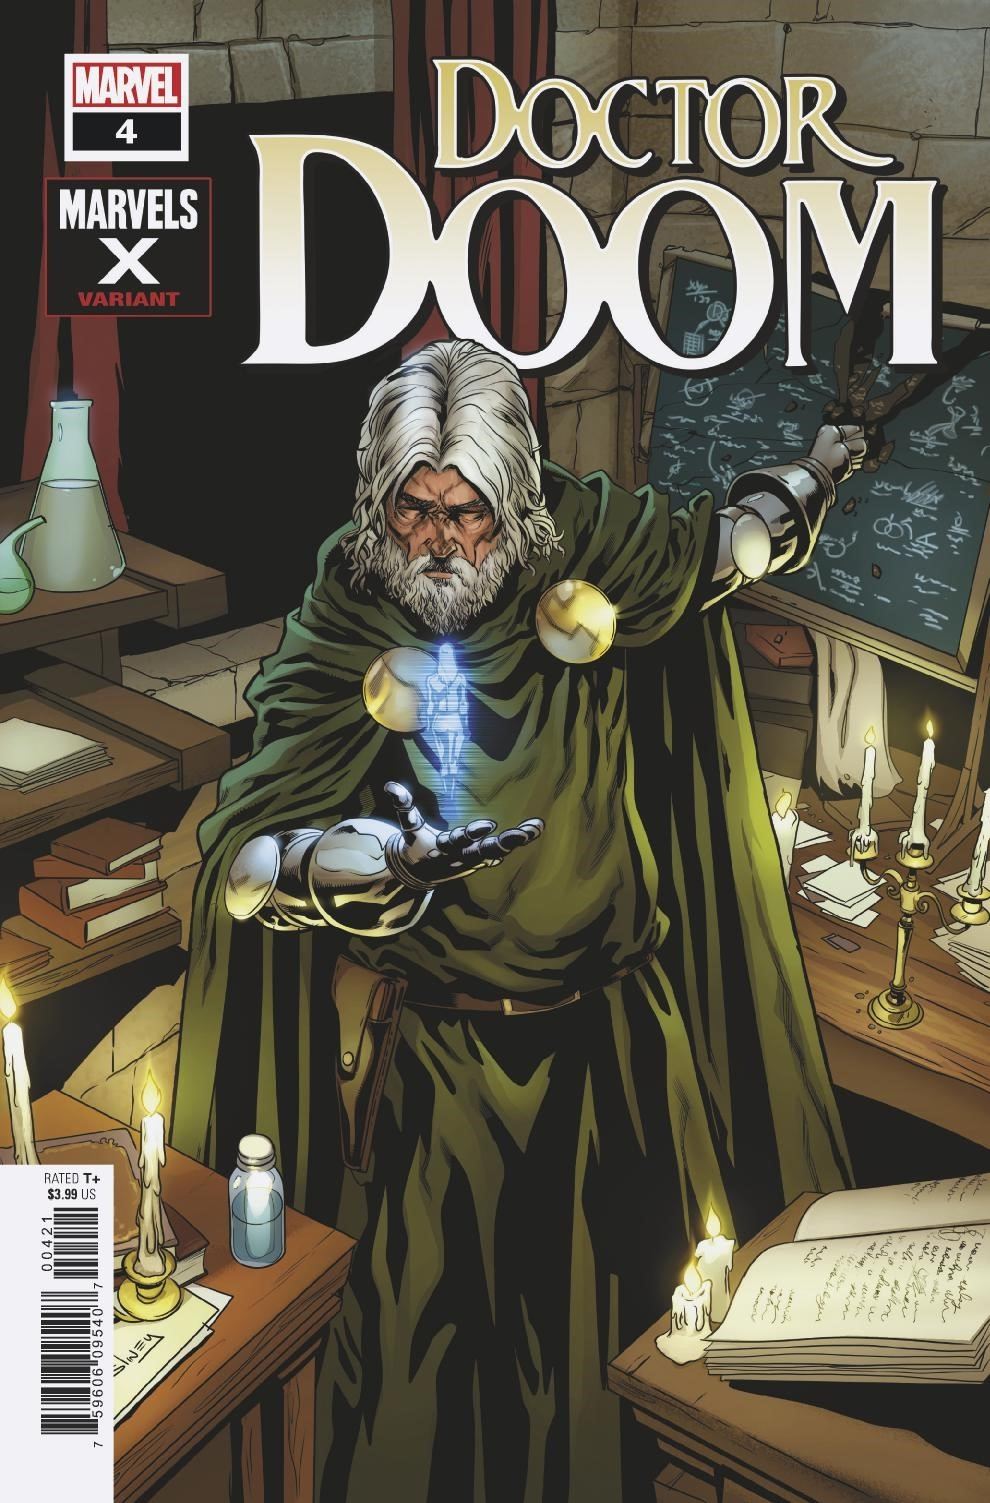 DOCTOR DOOM #4 SLINEY MARVELS X VAR